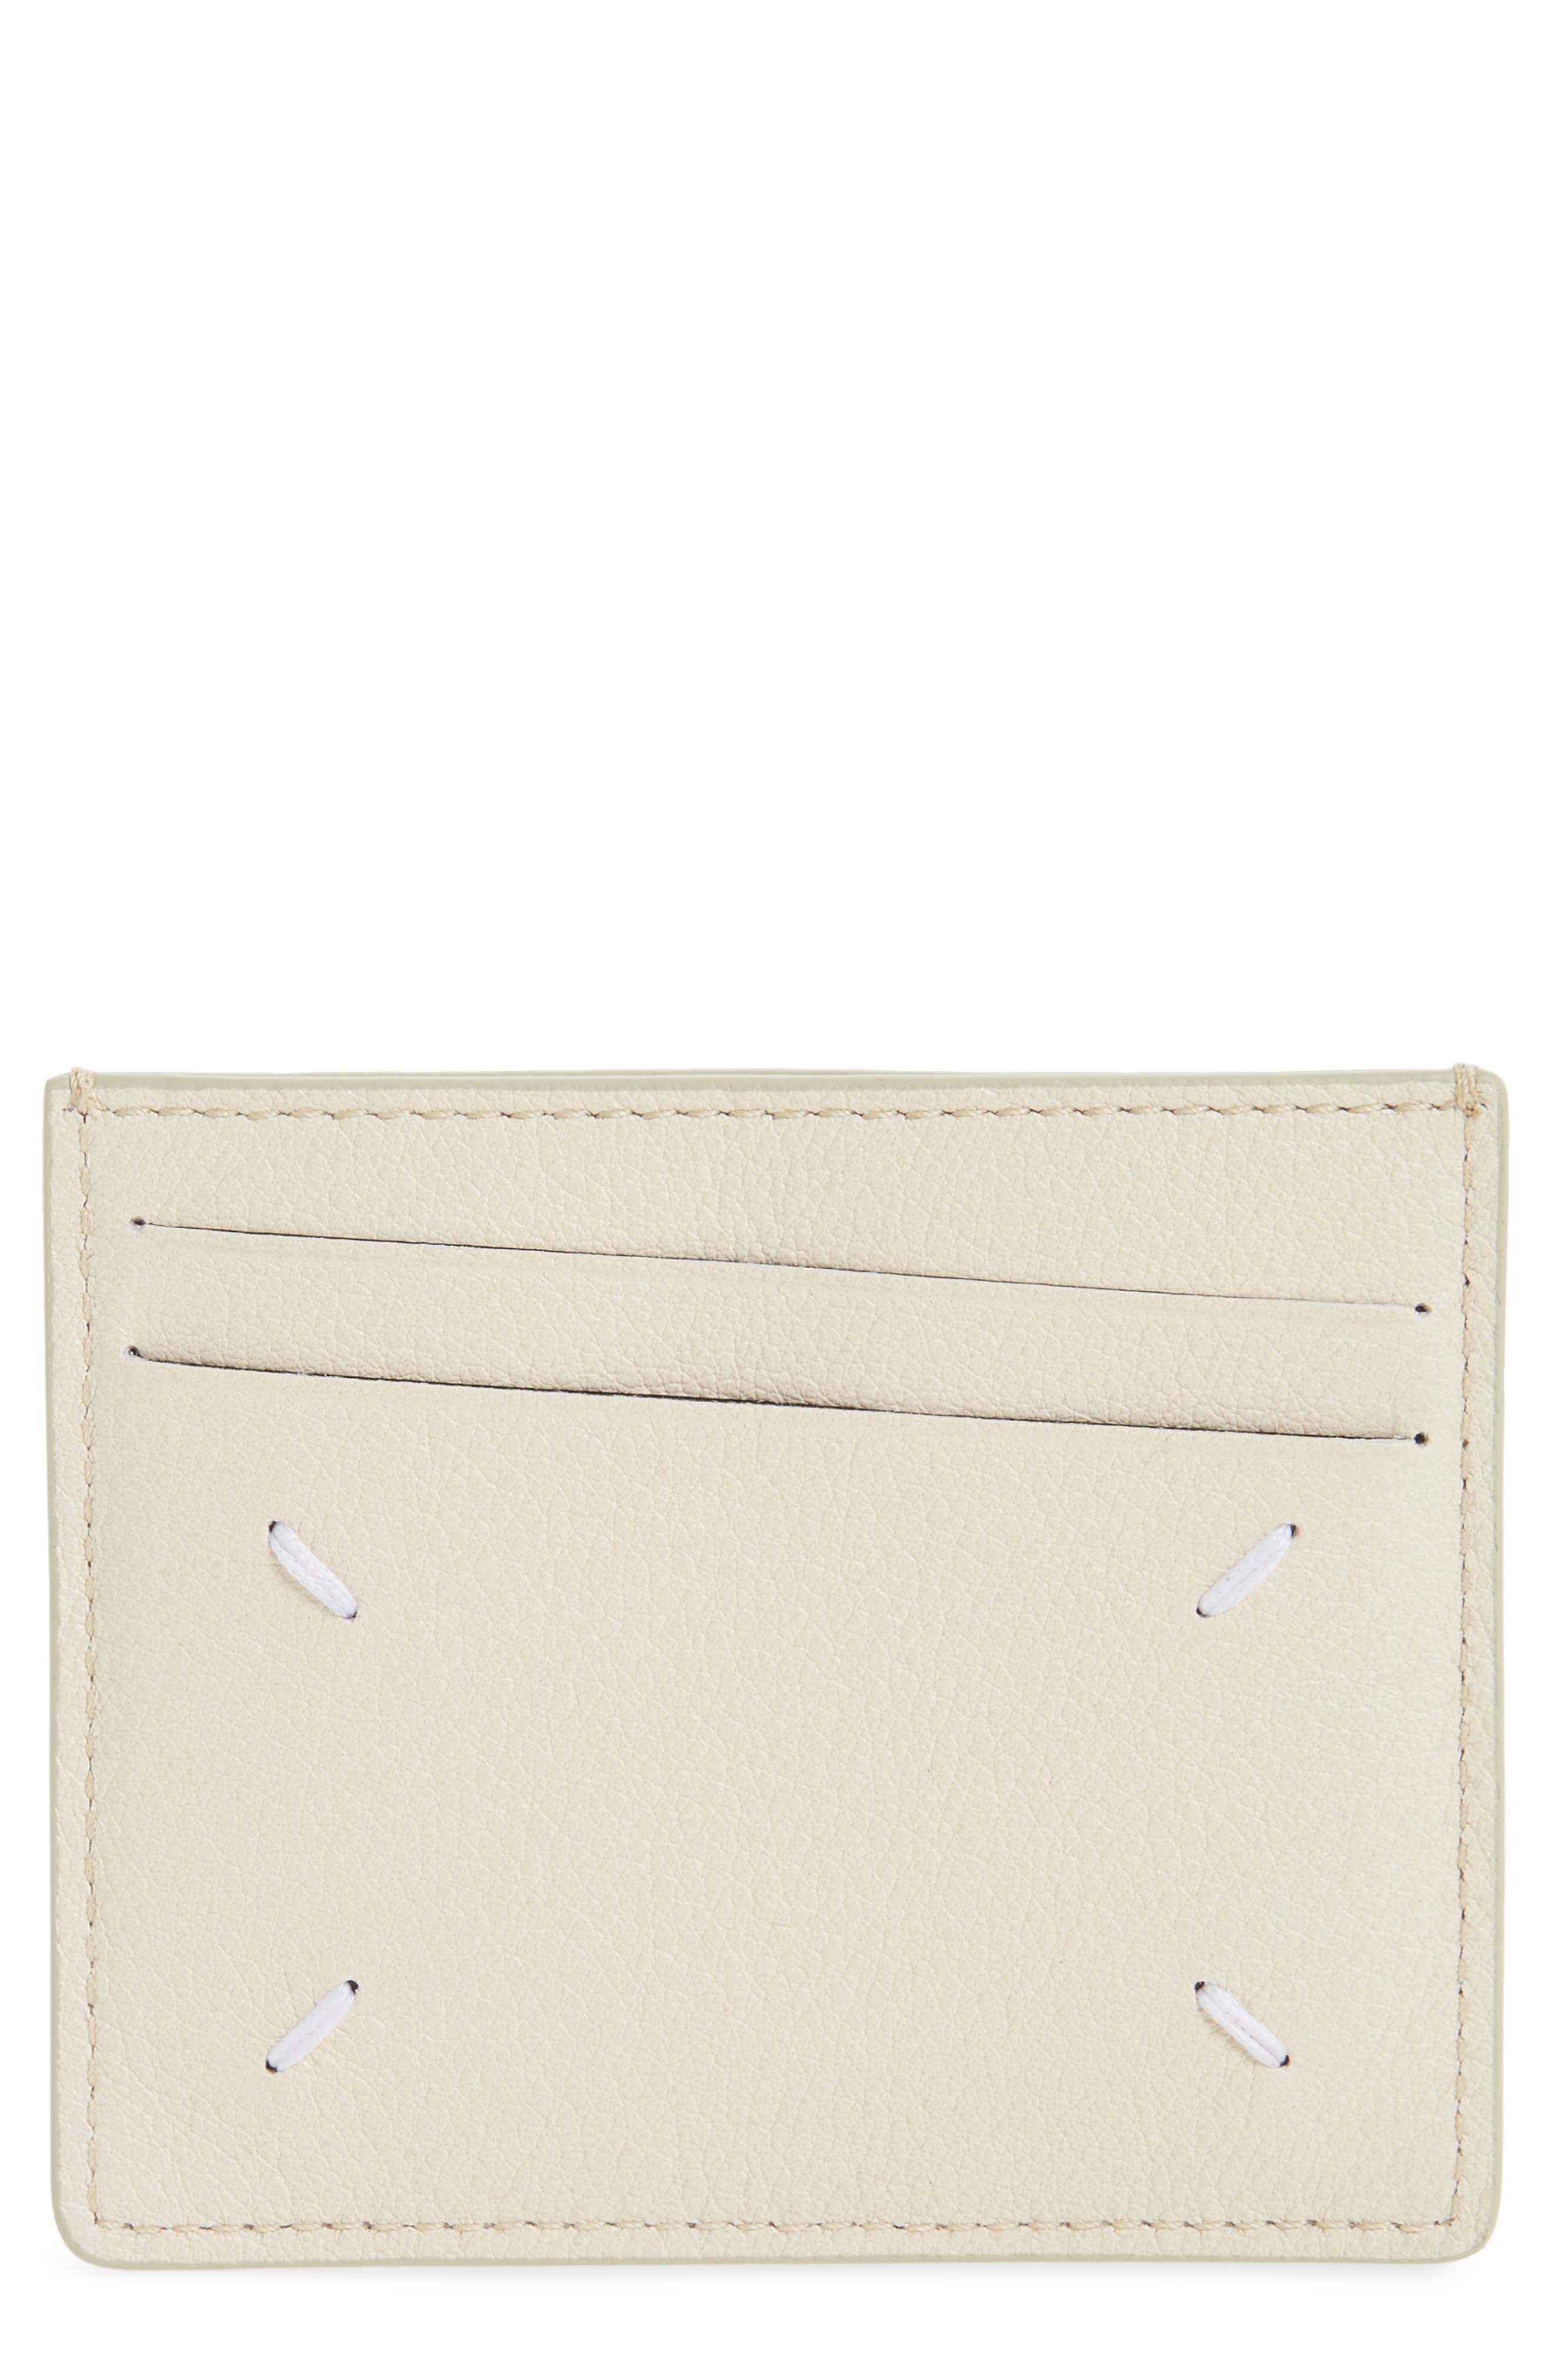 Leather Card Case,                         Main,                         color, White